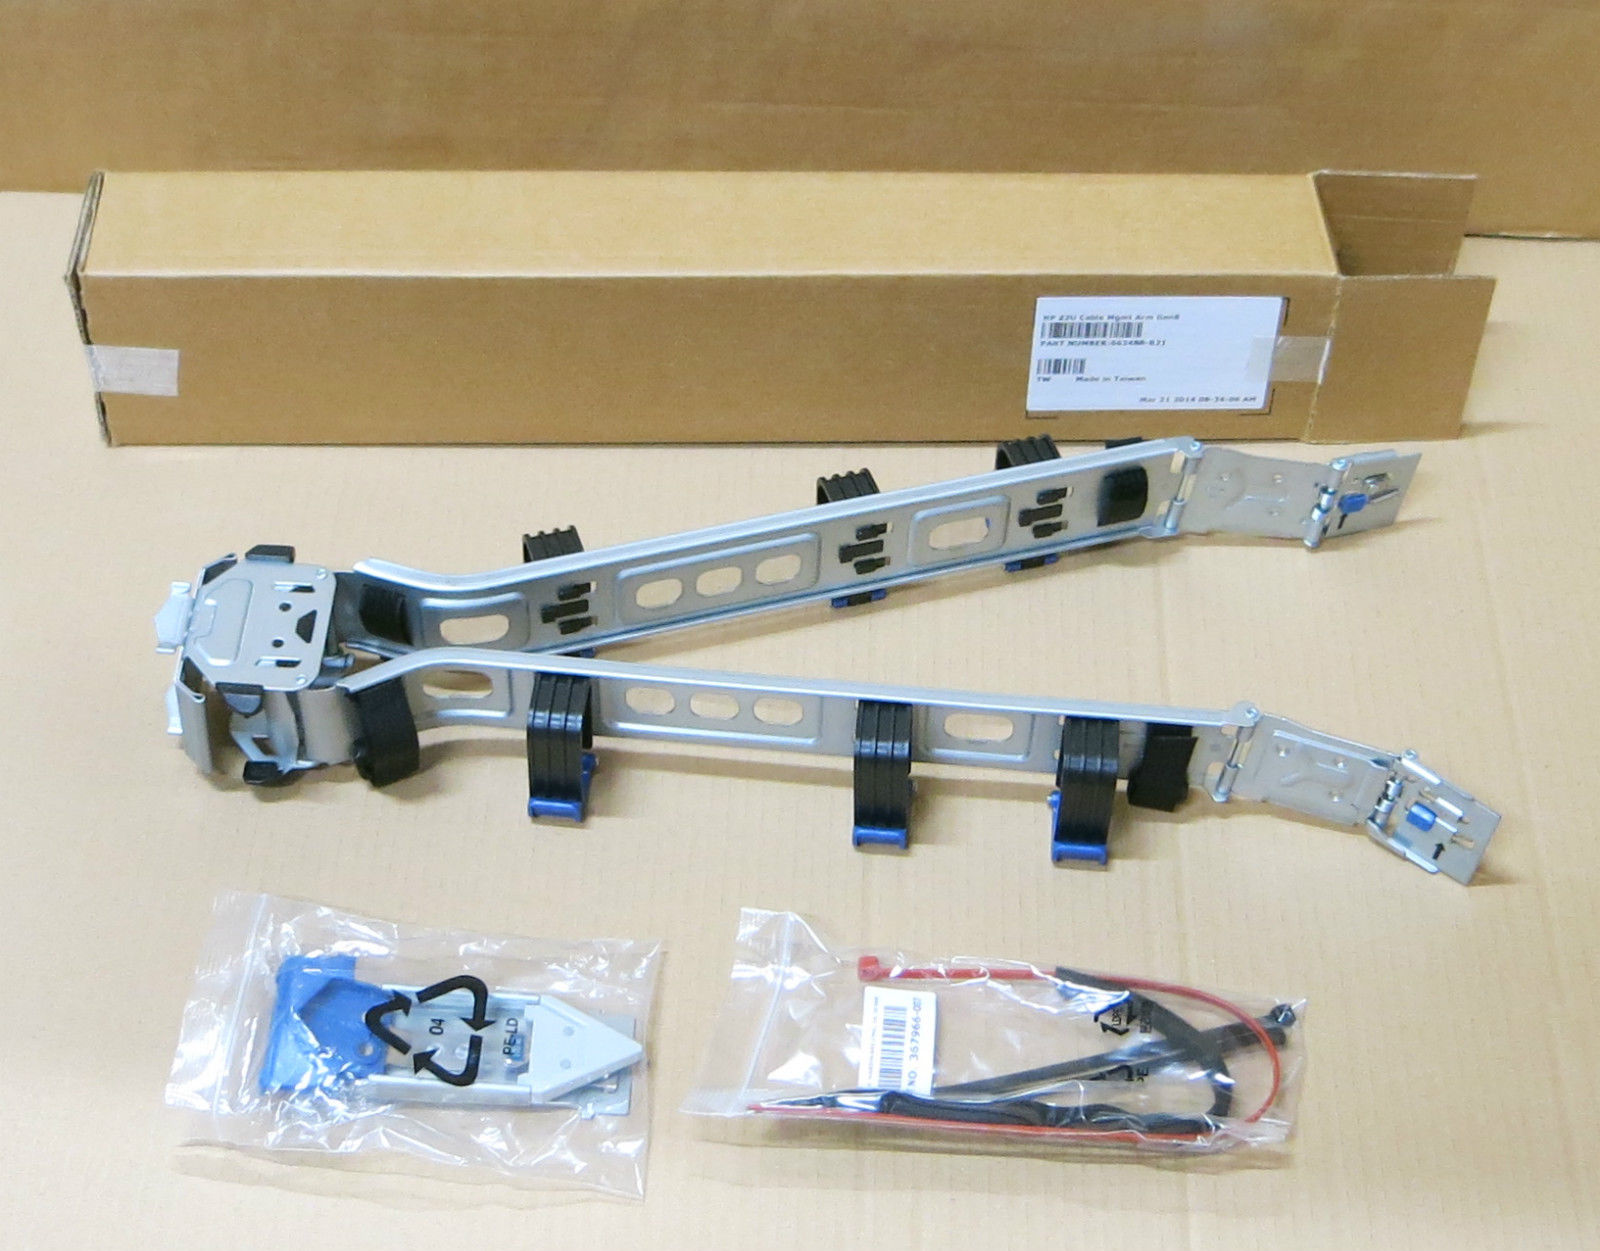 New Hp 2u Cable Management Arm For Dl385p G8 Dl380 G8